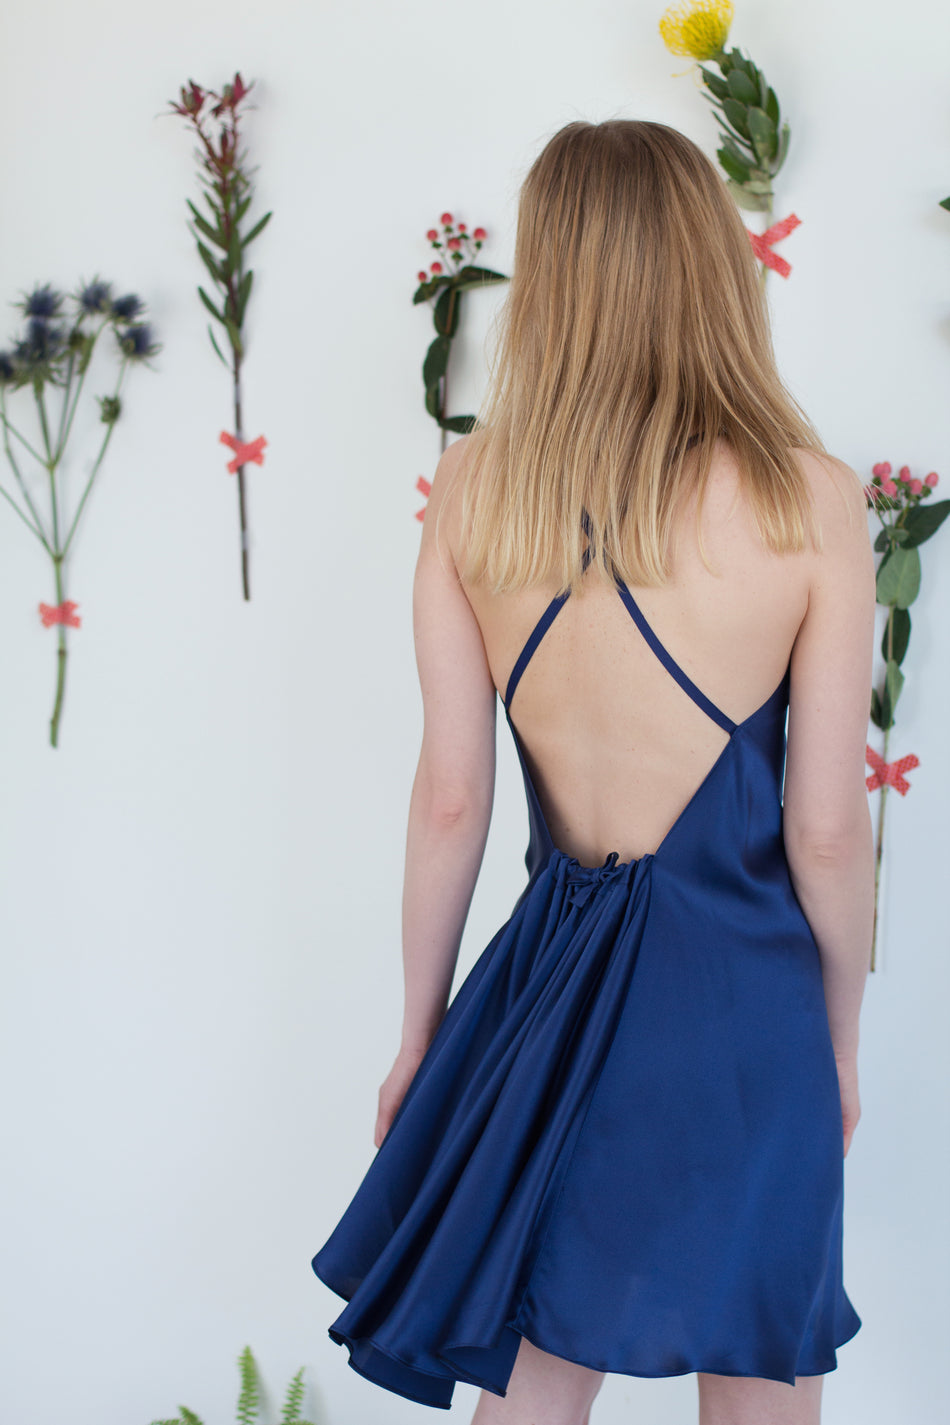 Frivolo Dress in seta pura blu